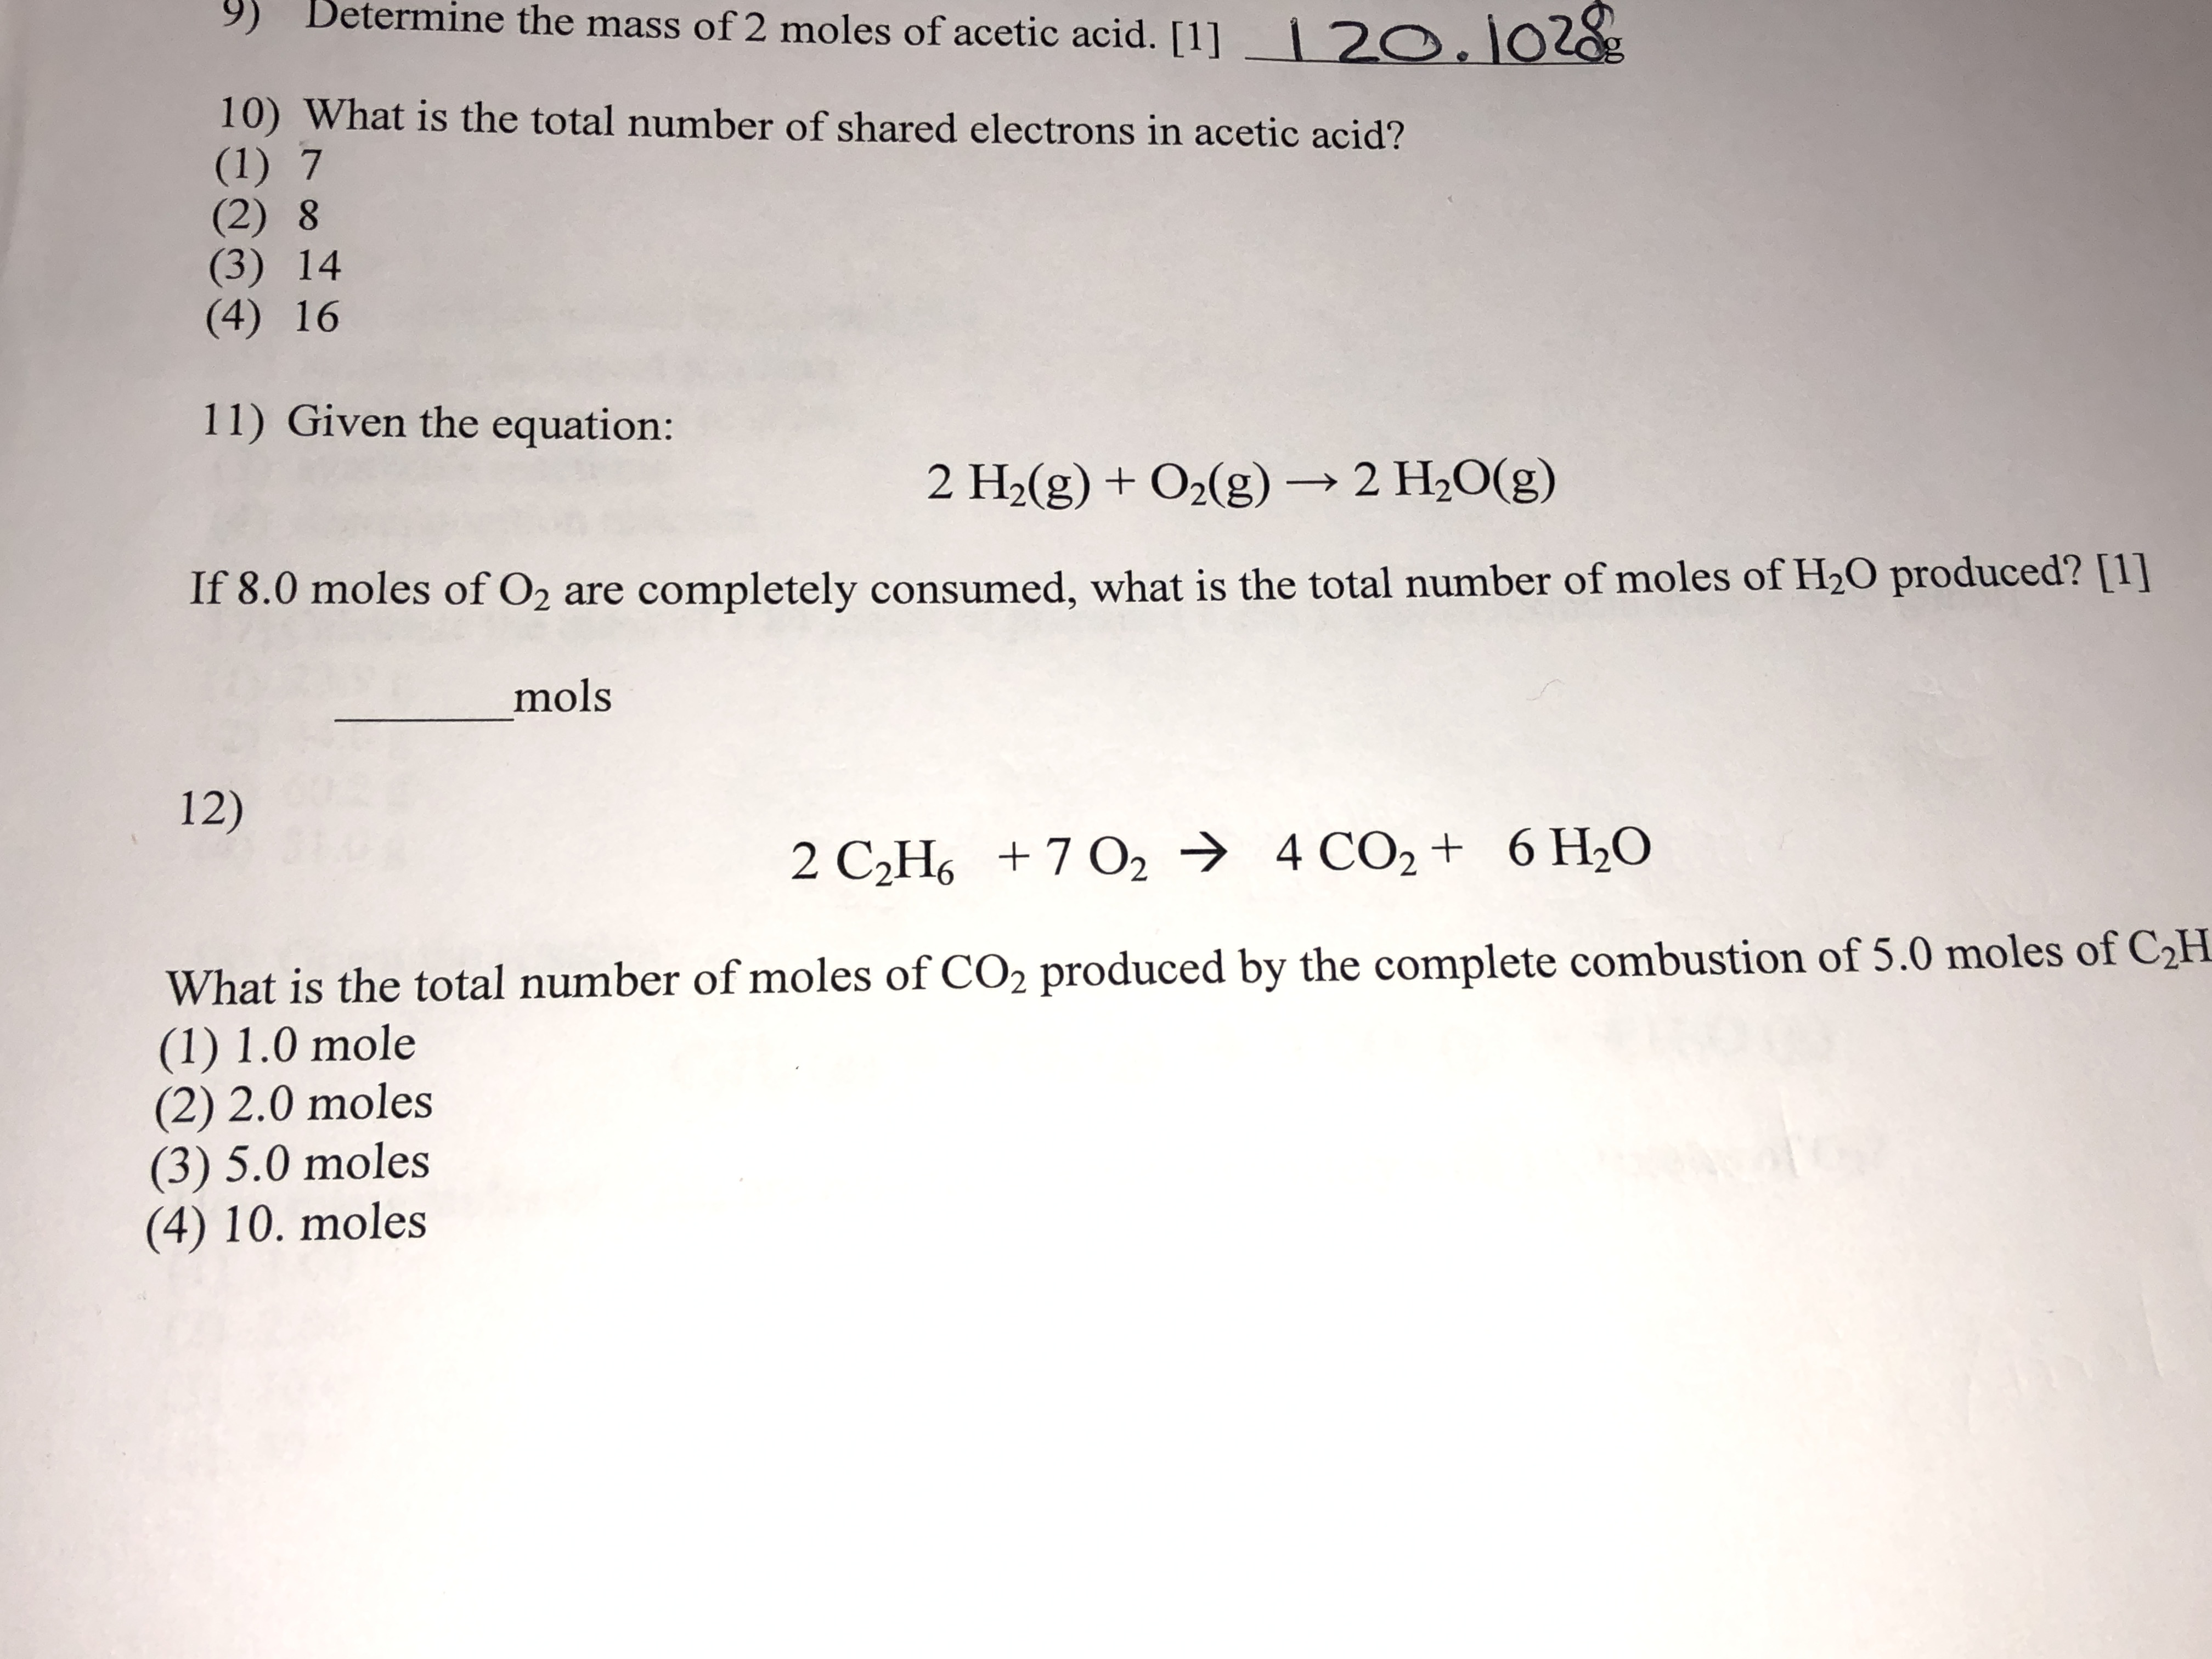 9) Betermine the mass of 2 moles of acetic acid. [1] 2O.102g 10) What is the total number of shared electrons in acetic acid? (1) 7 (2) 8 (3) 14 (4) 16 11) Given the equation: 2 H2(g) +02(g)2 H2O(g) If 8.0 moles of O2 are completely consumed, what is the total number of moles of H20 produced? [1] mols 12) 2 C2H6 7 O2 4 CO2 + 6 H20 What is the total number of moles of CO2 produced by the complete combustion of 5.0 moles of C2H (1) 1.0 mole (2) 2.0 moles (3) 5.0 moles (4) 10. moles